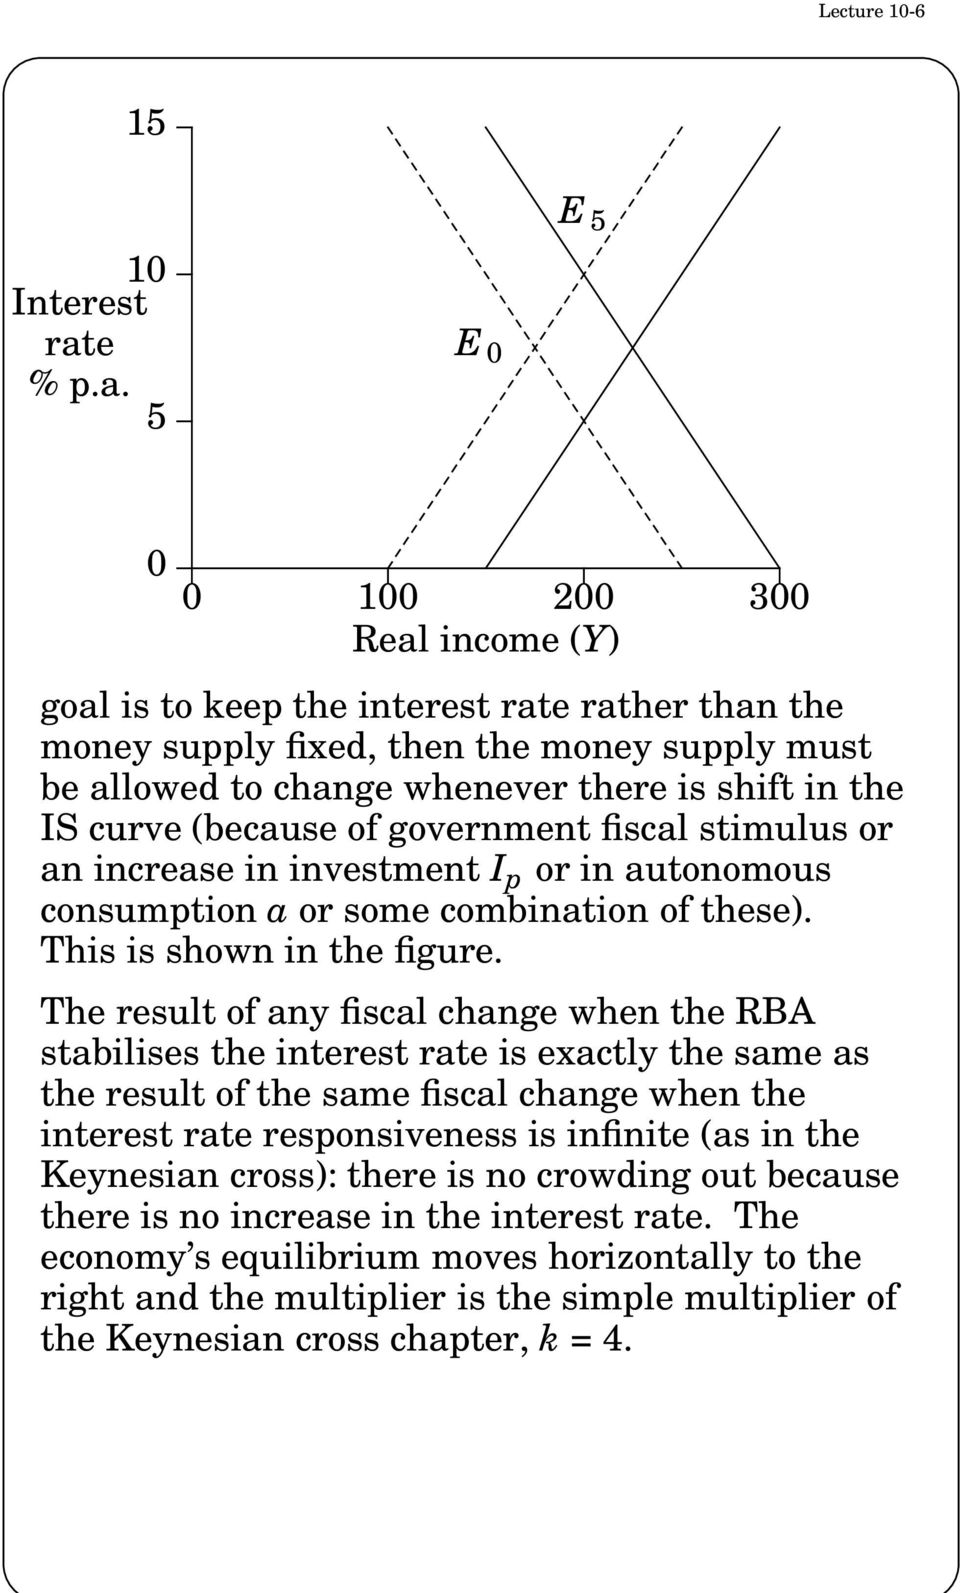 5 E 0 E 5 0 0 100 200 300 Real income (Y) goal is to keep the interest rate rather than the money supply fixed, then the money supply must be allowed to change whenever there is shift in the IS curve